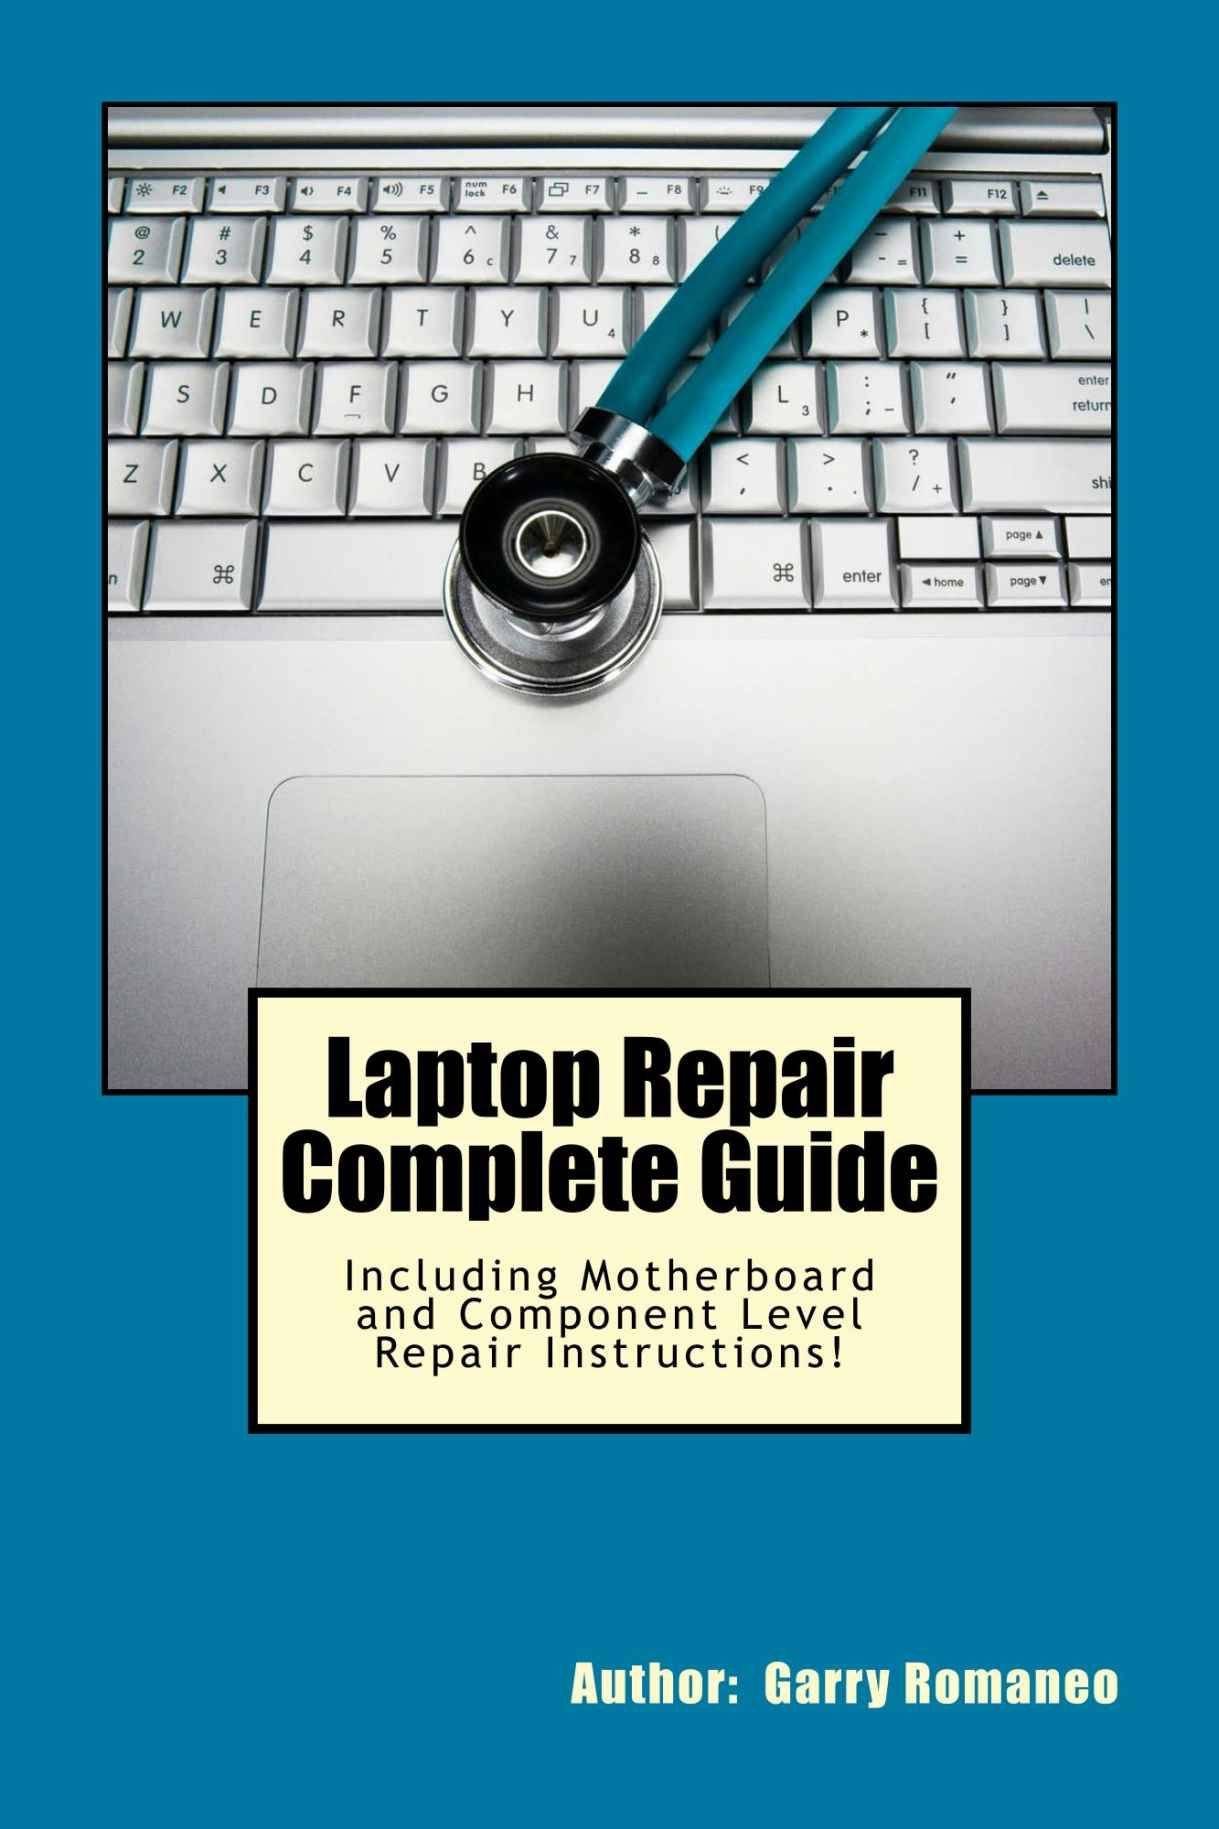 Laptop Repair Complete Guide; Including Motherboard Component Level Repair!:  Garry Romaneo: 9781468096521: Amazon.com: Books